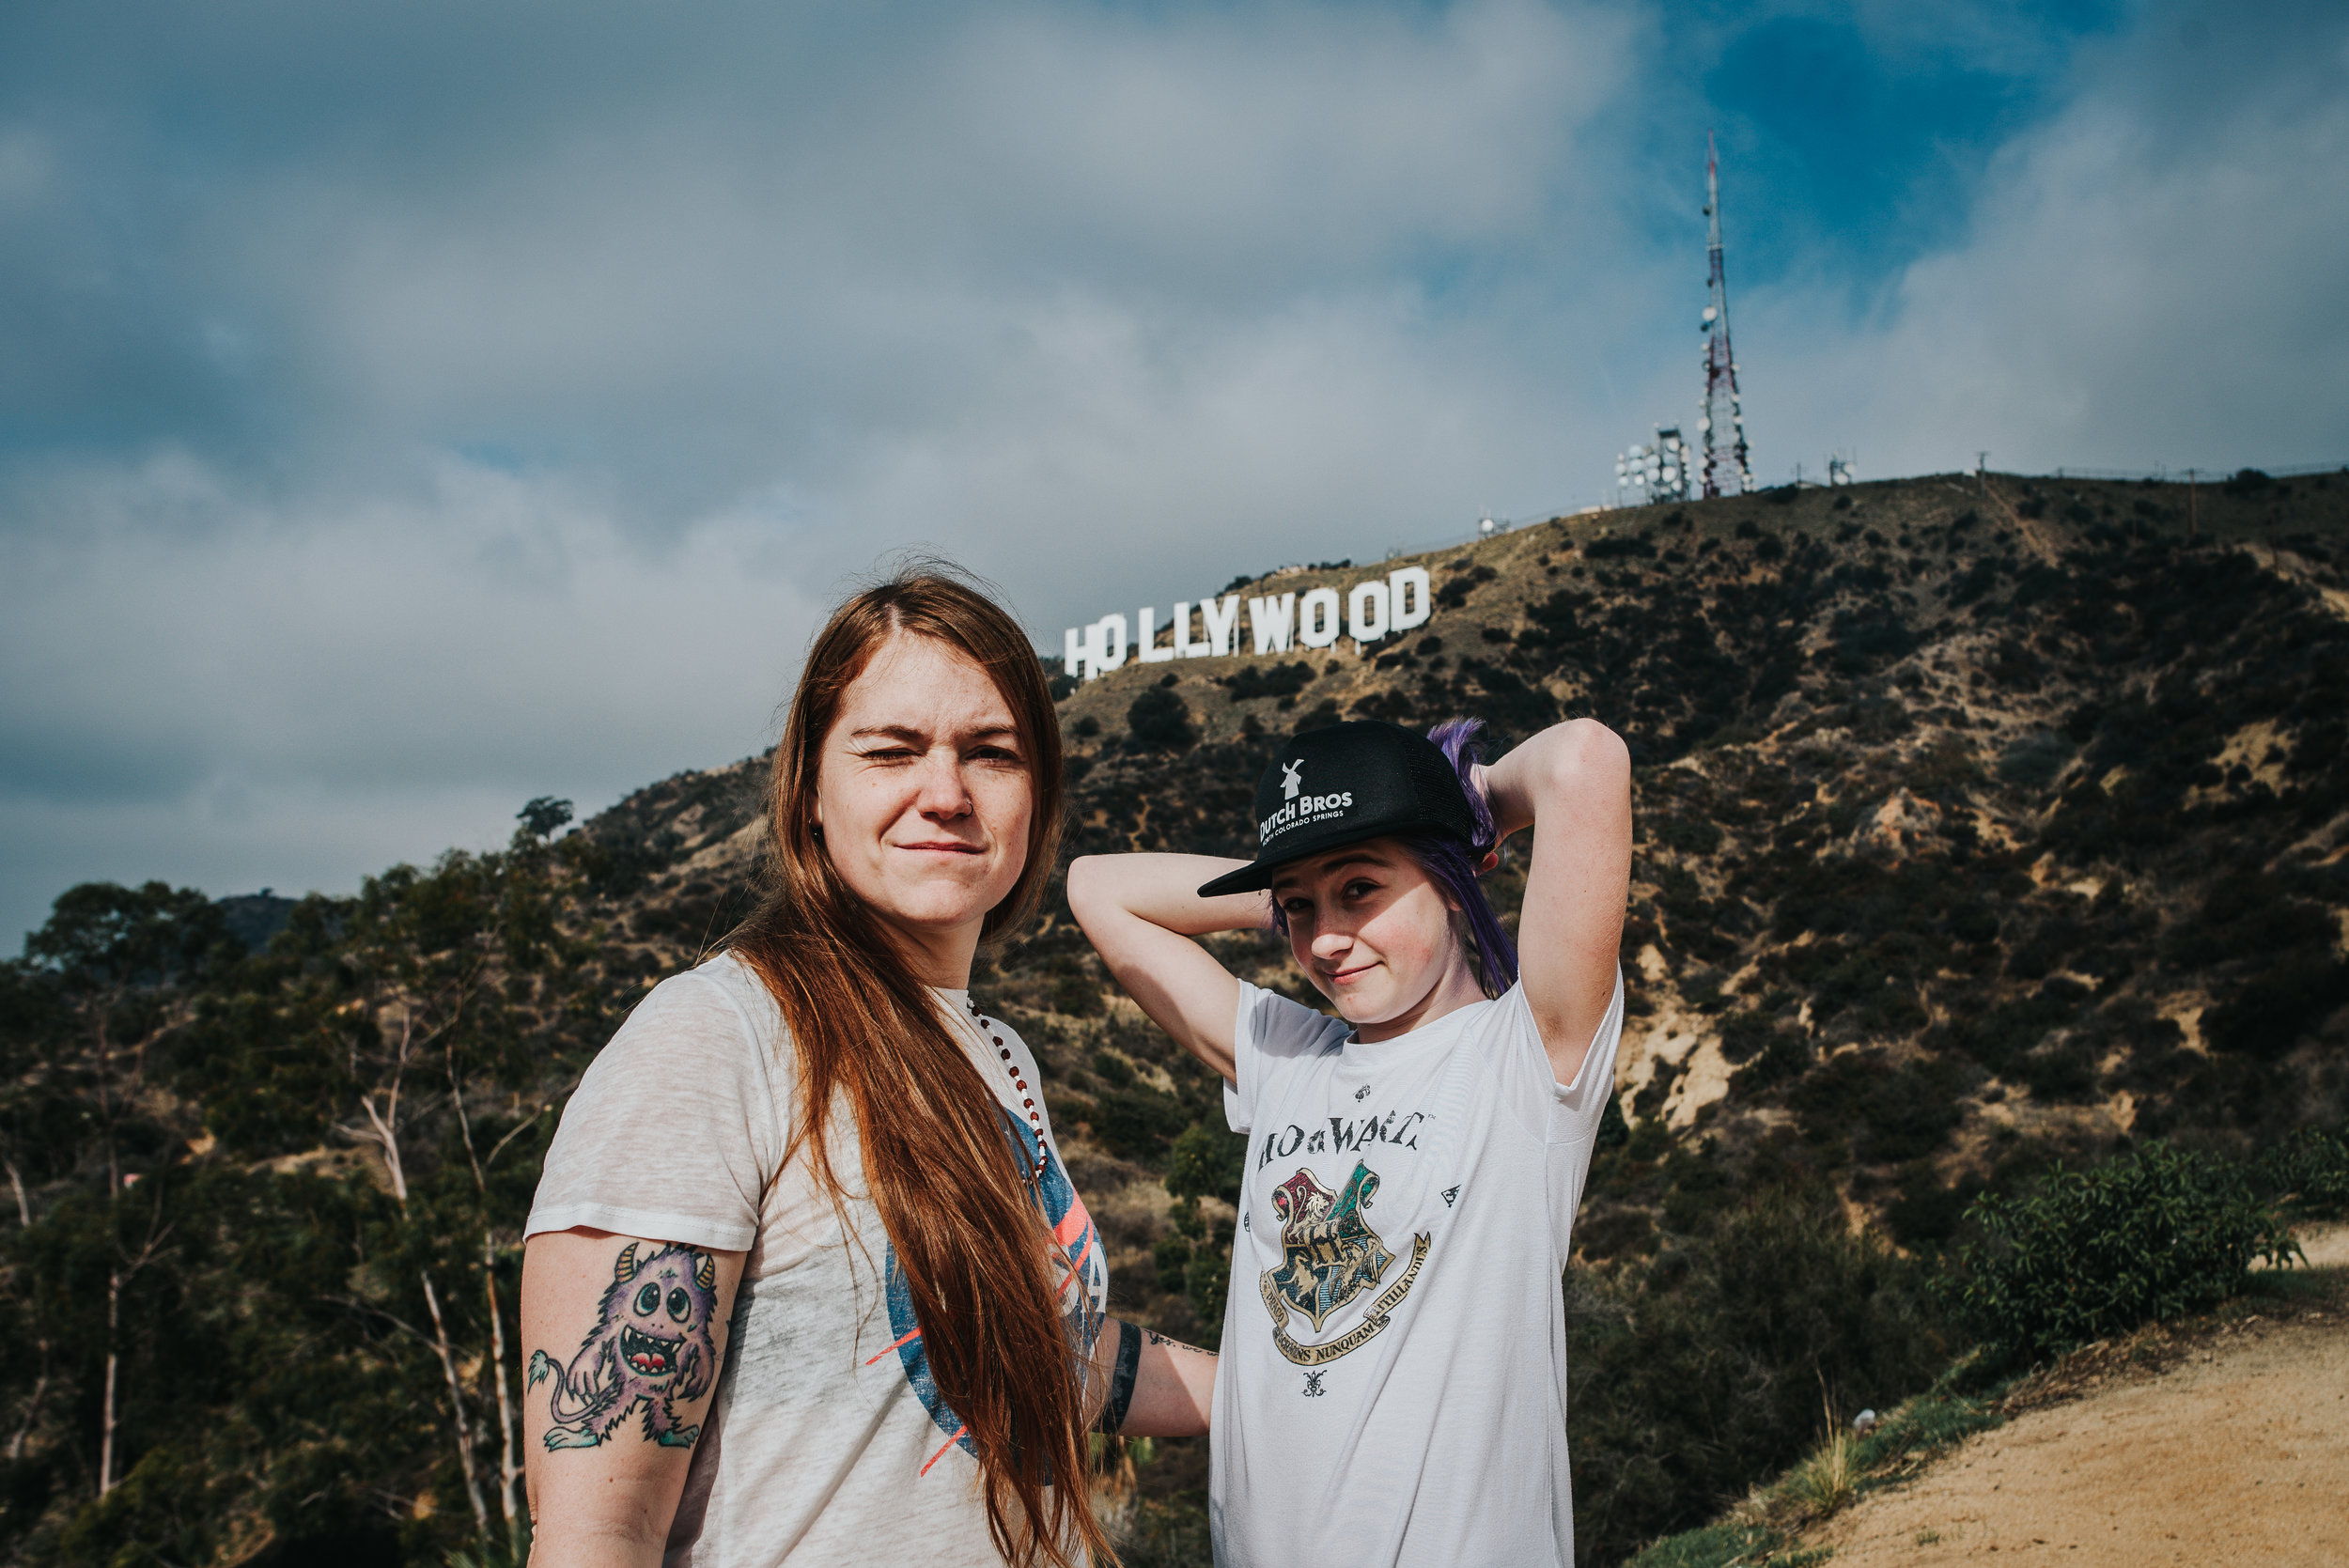 Mother and daughter pose in front of Hollywood sign in California.